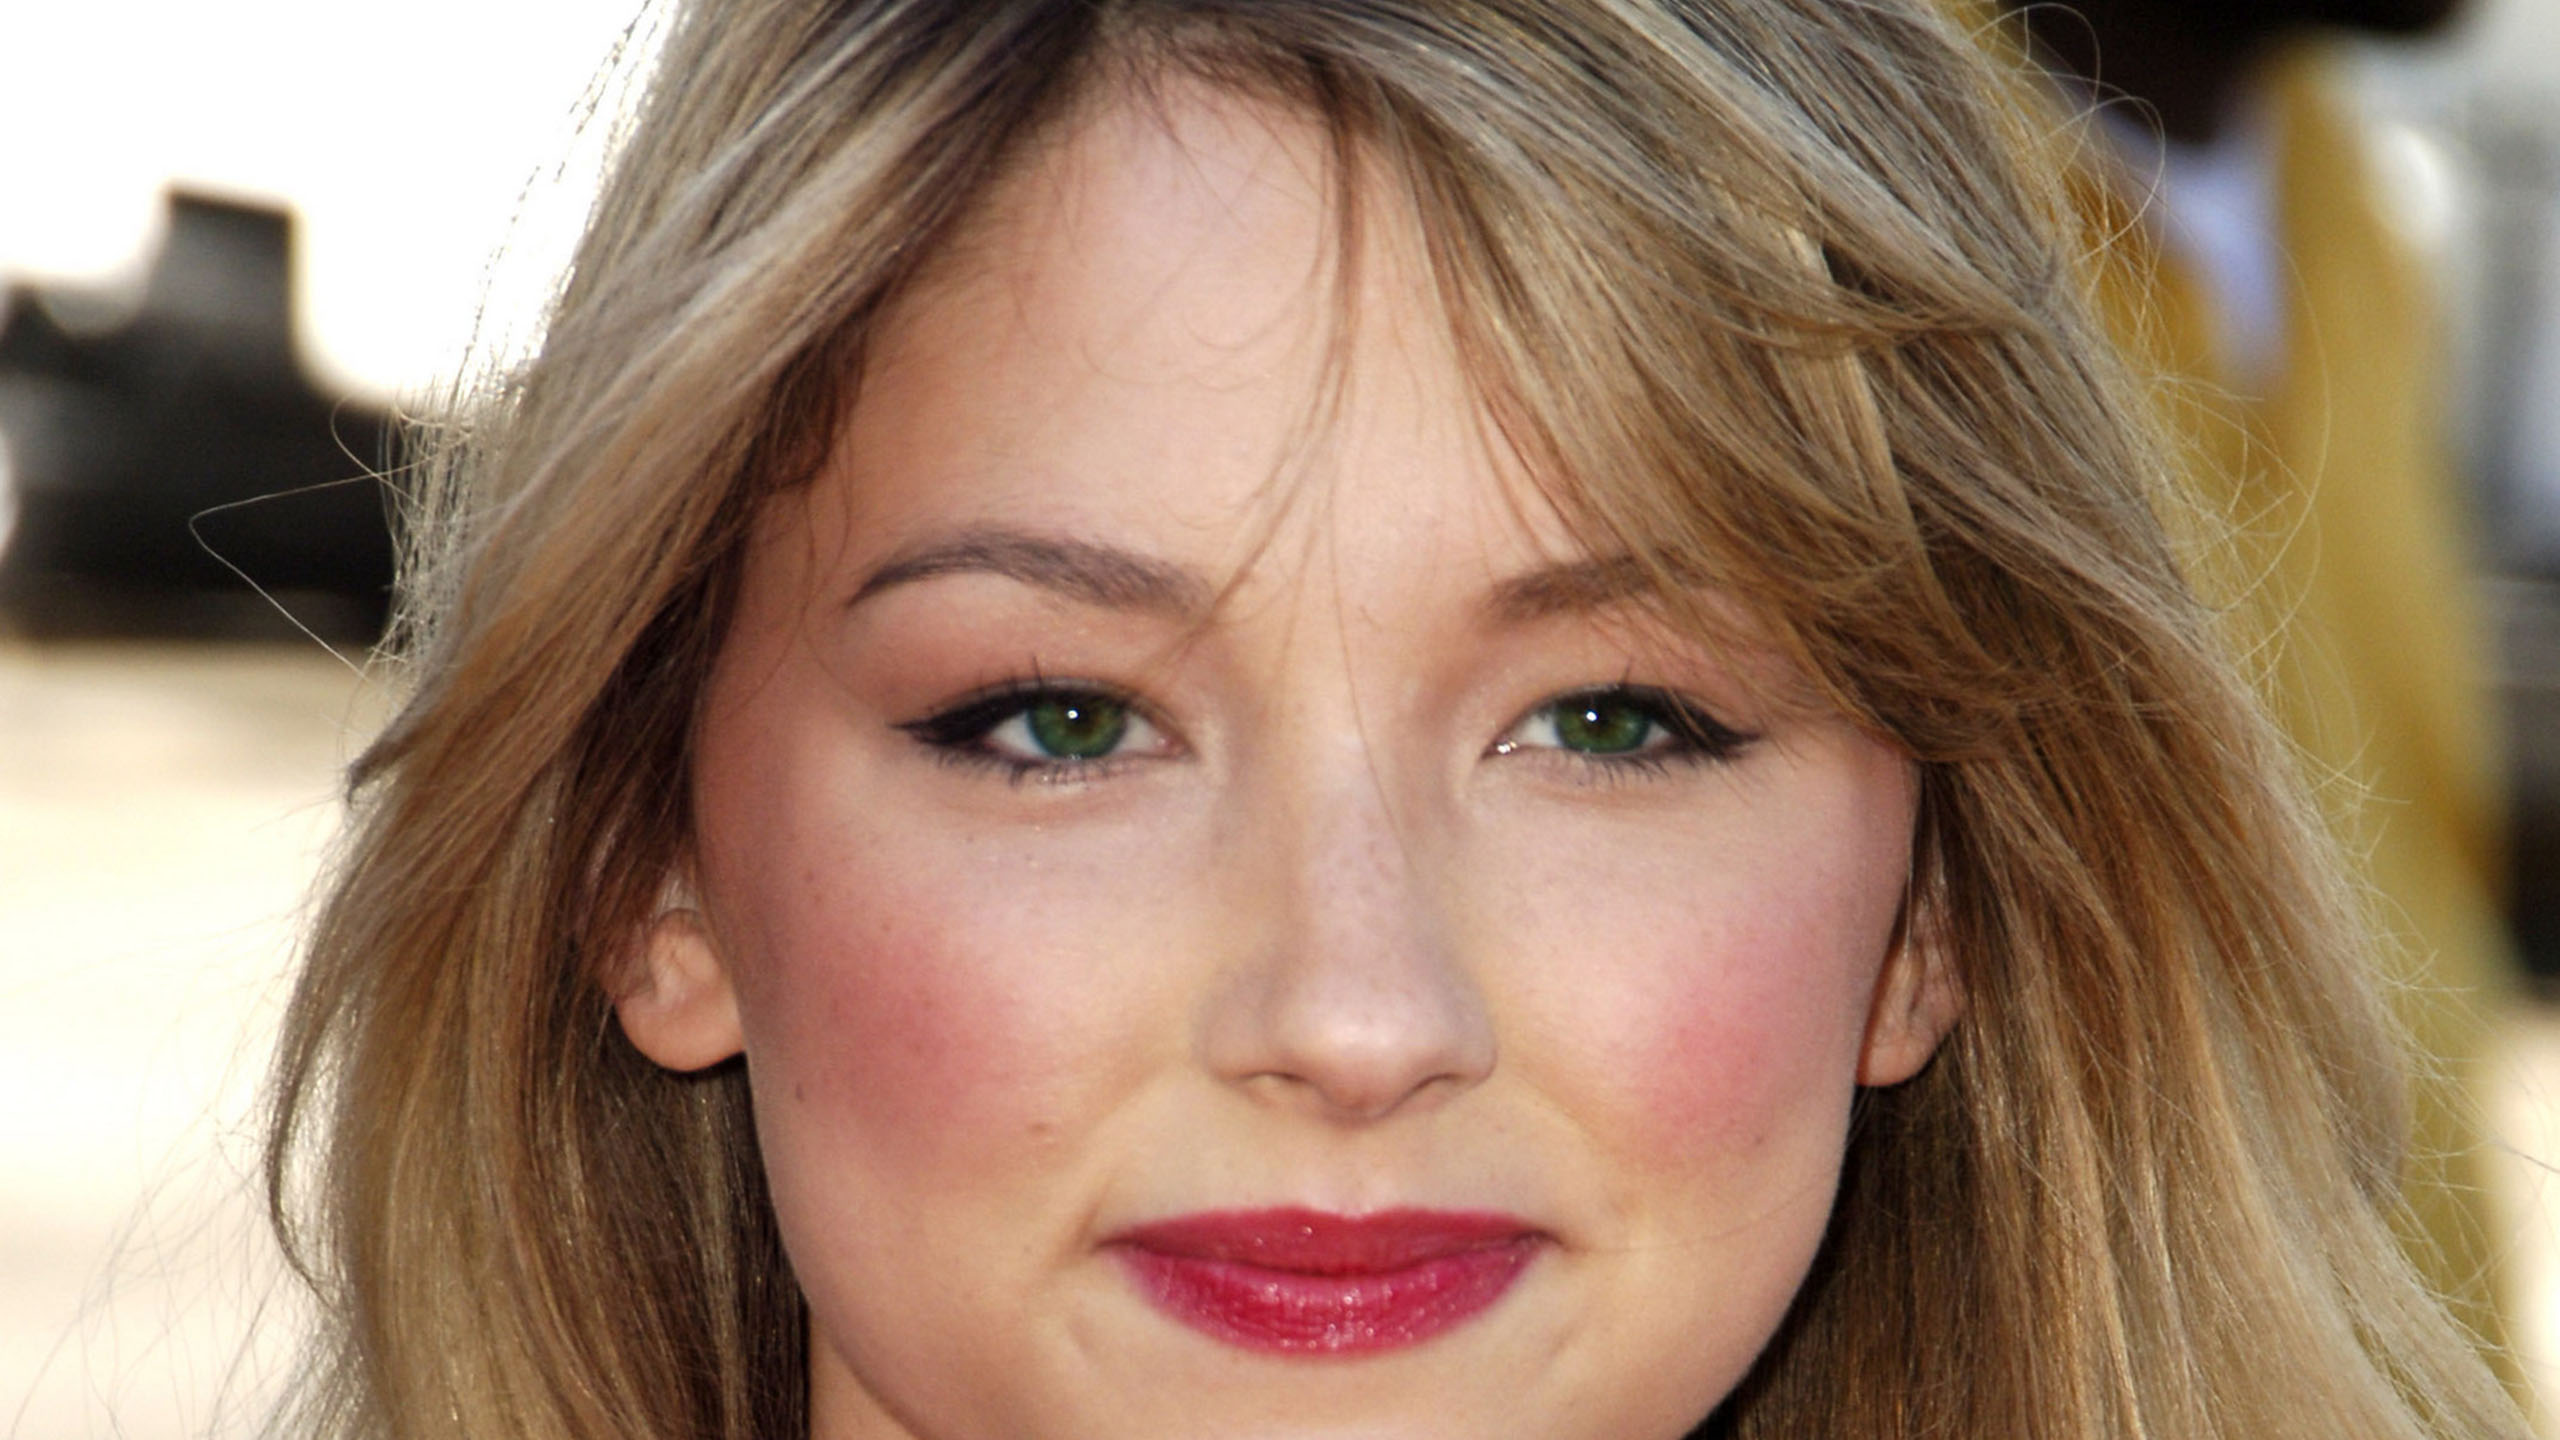 download Haley Bennett Background Wallpapers 2560x1440